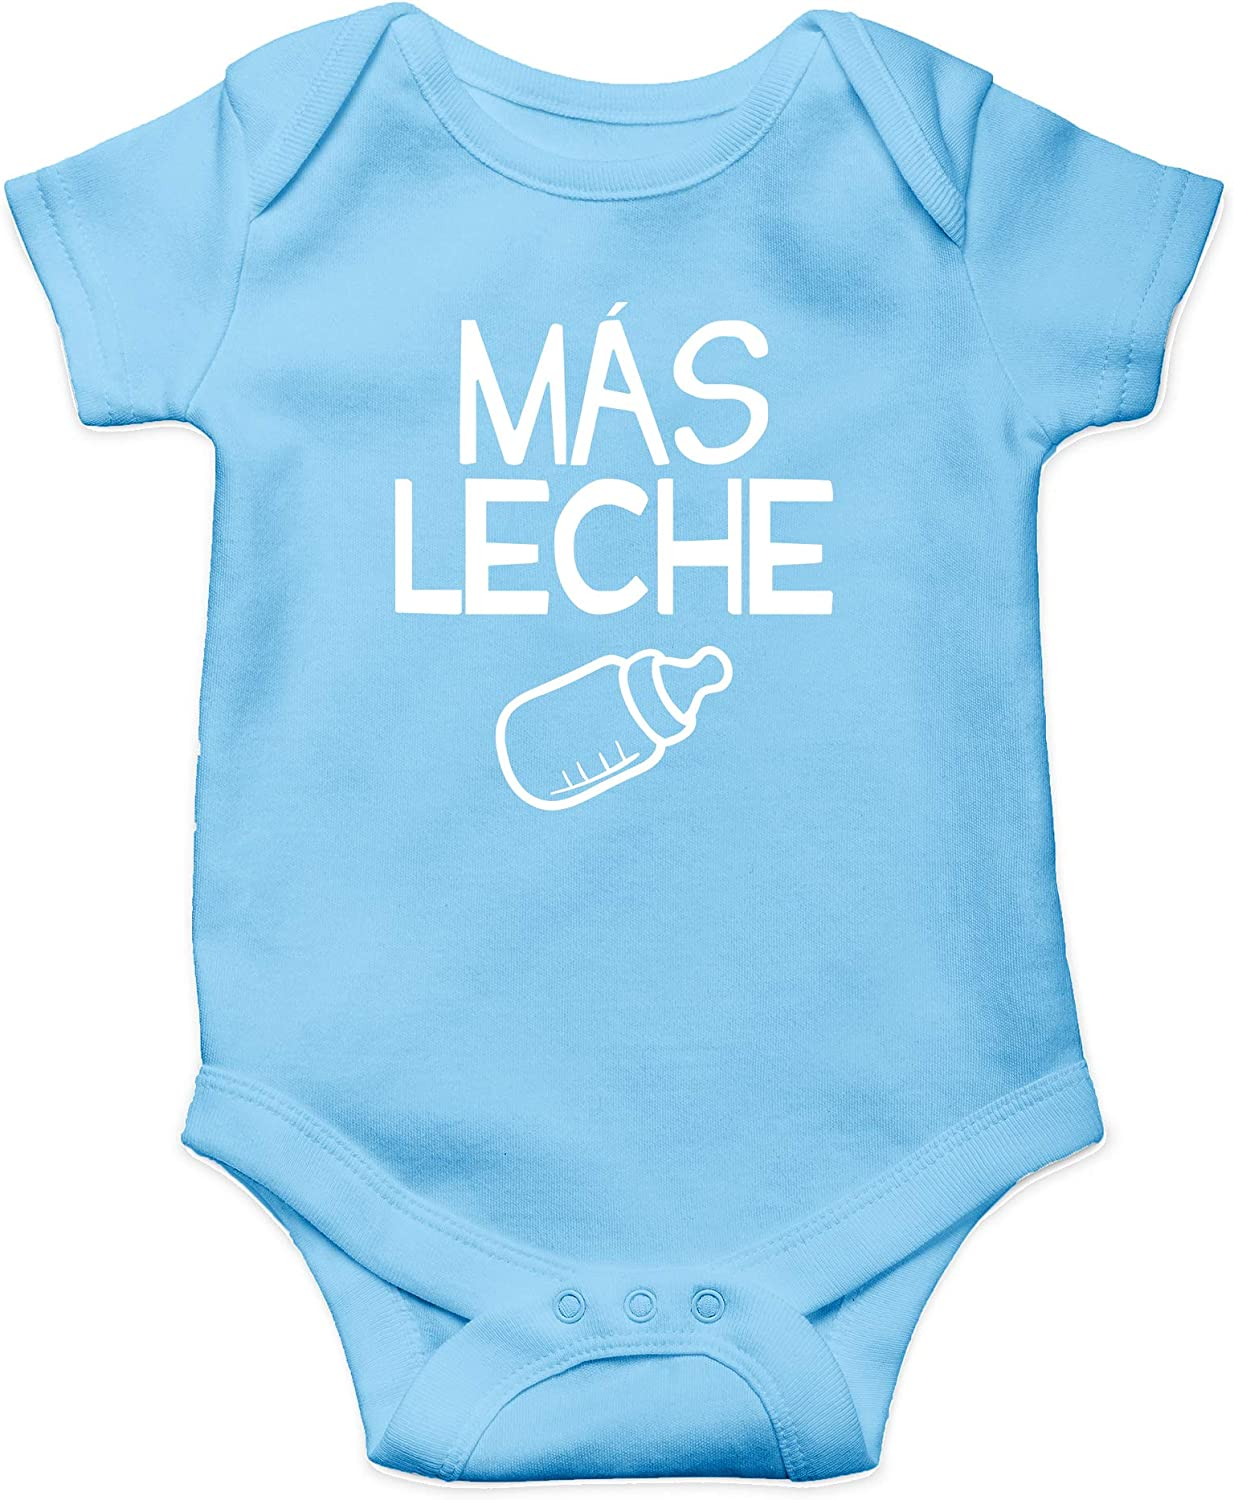 We OFFer at cheap prices Mas Leche - Spanish Phrase More C But Please First Super sale Milk